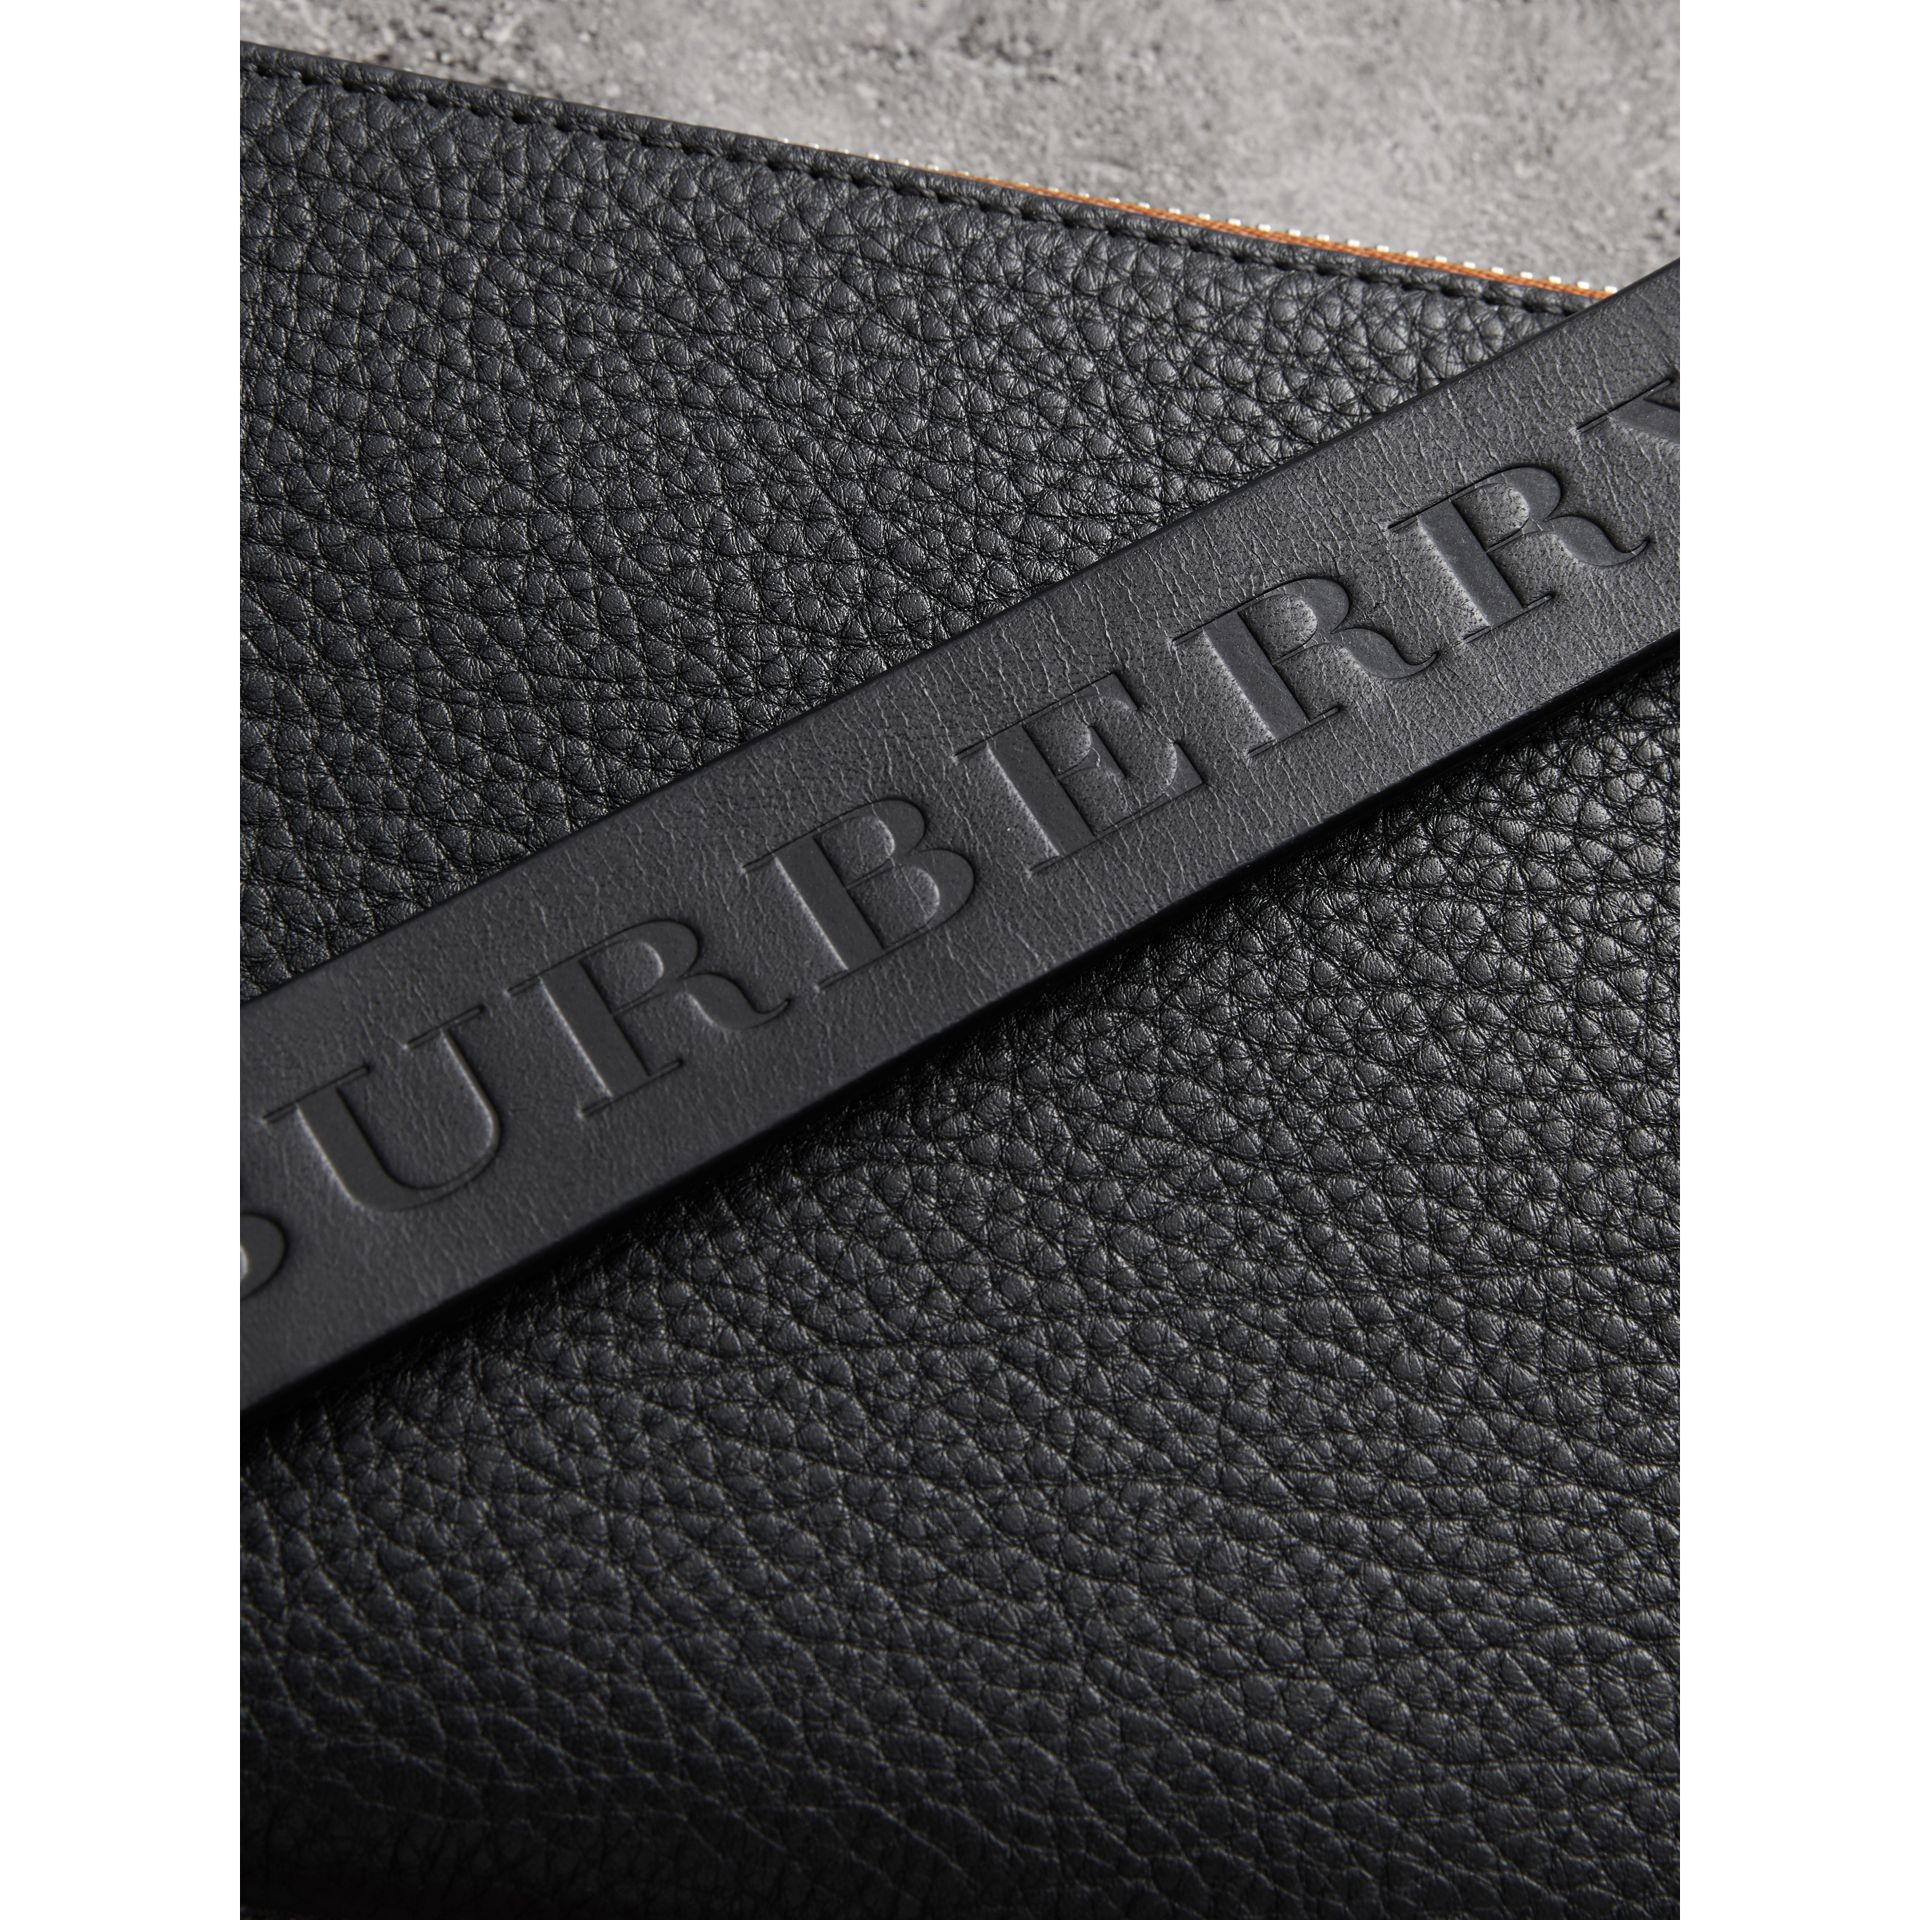 Two-tone Grainy Leather Travel Wallet in Black - Men | Burberry - gallery image 1